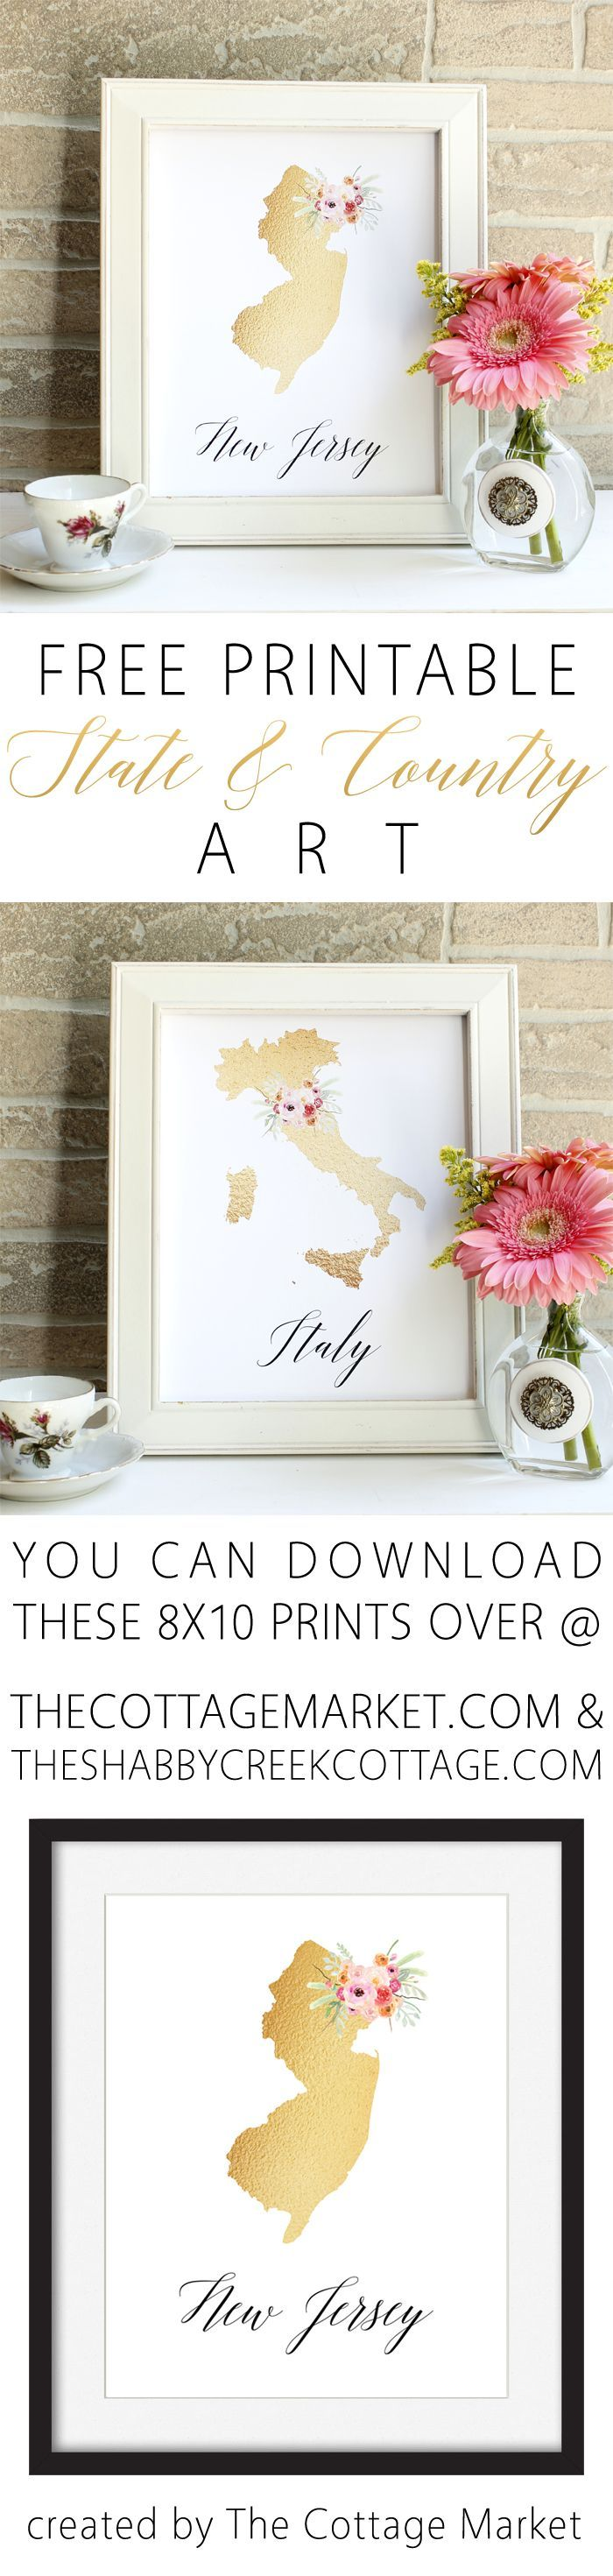 Free printable state art for most states and countries - beautiful gold foil look, and 100% free for personal use! #freeprintable #walldecor #stateart